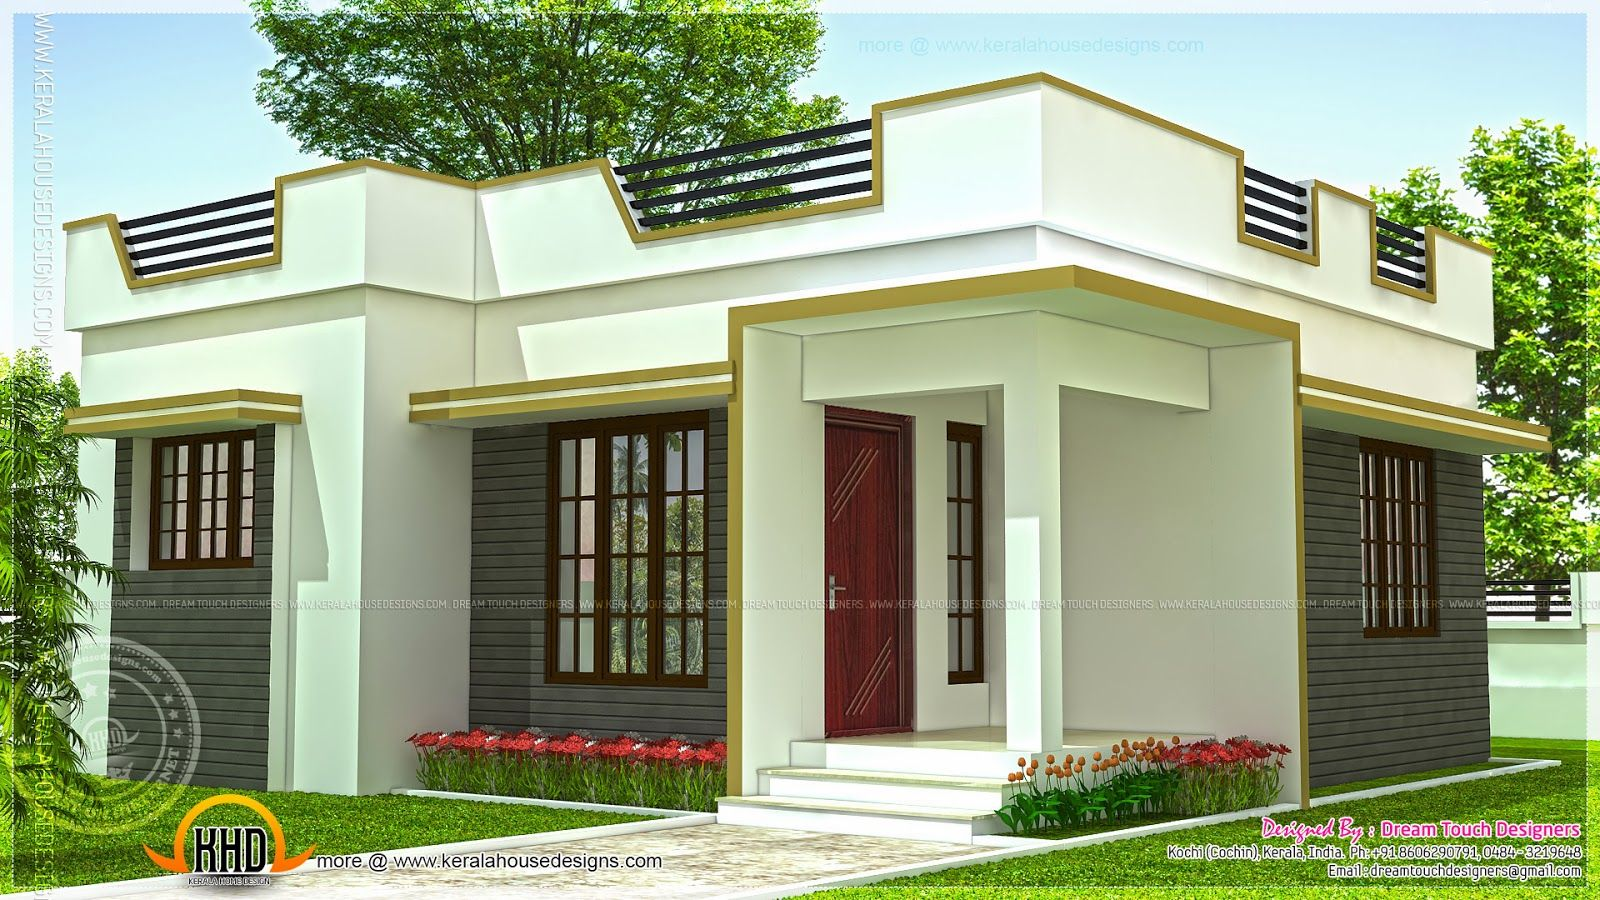 House Desing 20 small beautiful bungalow house design ideas ideal for